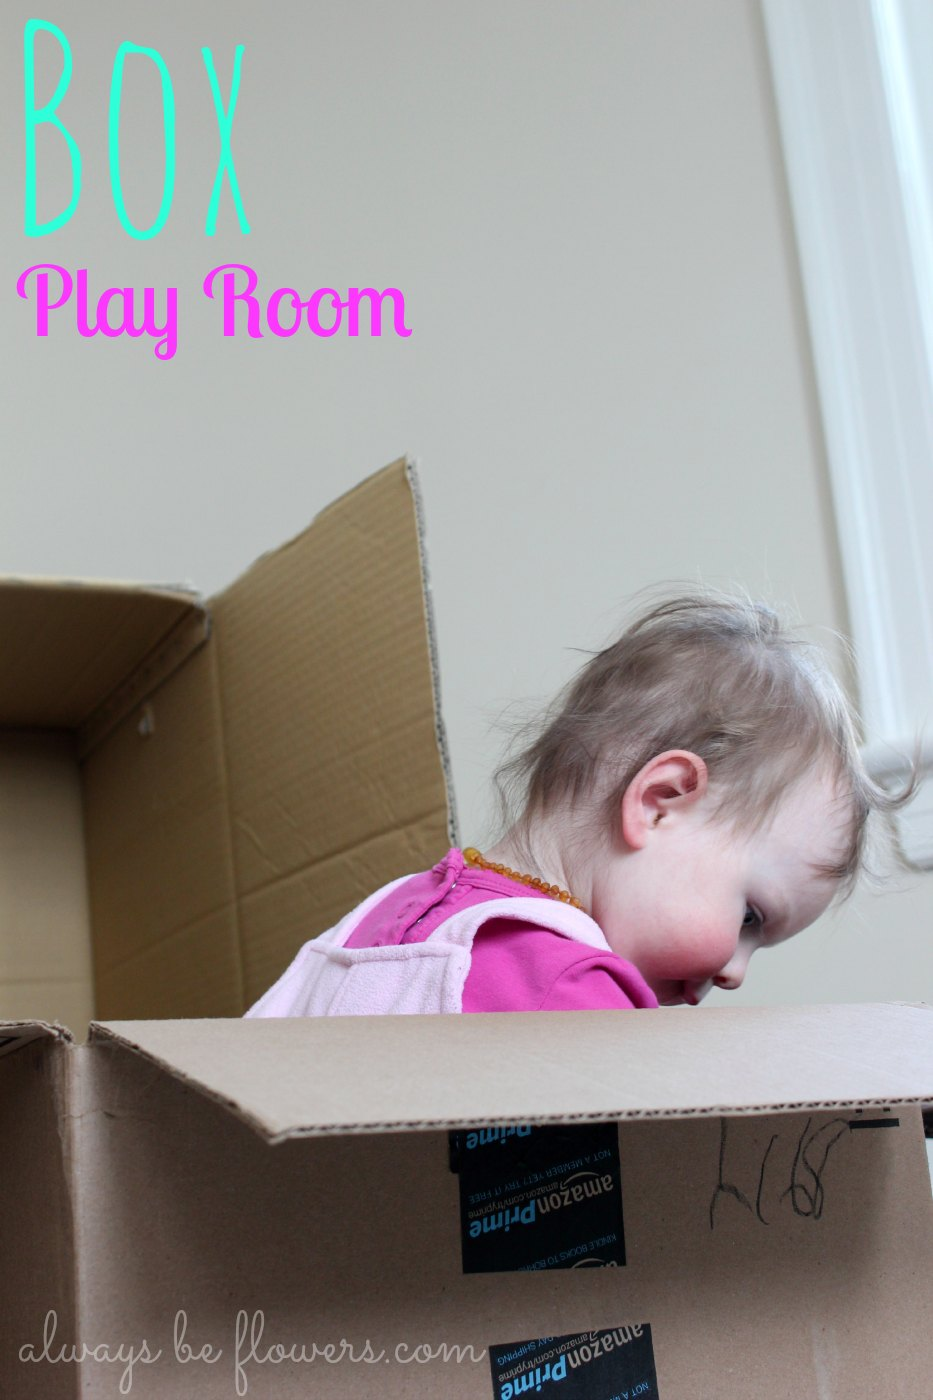 2014-box-play-room-2.jpg